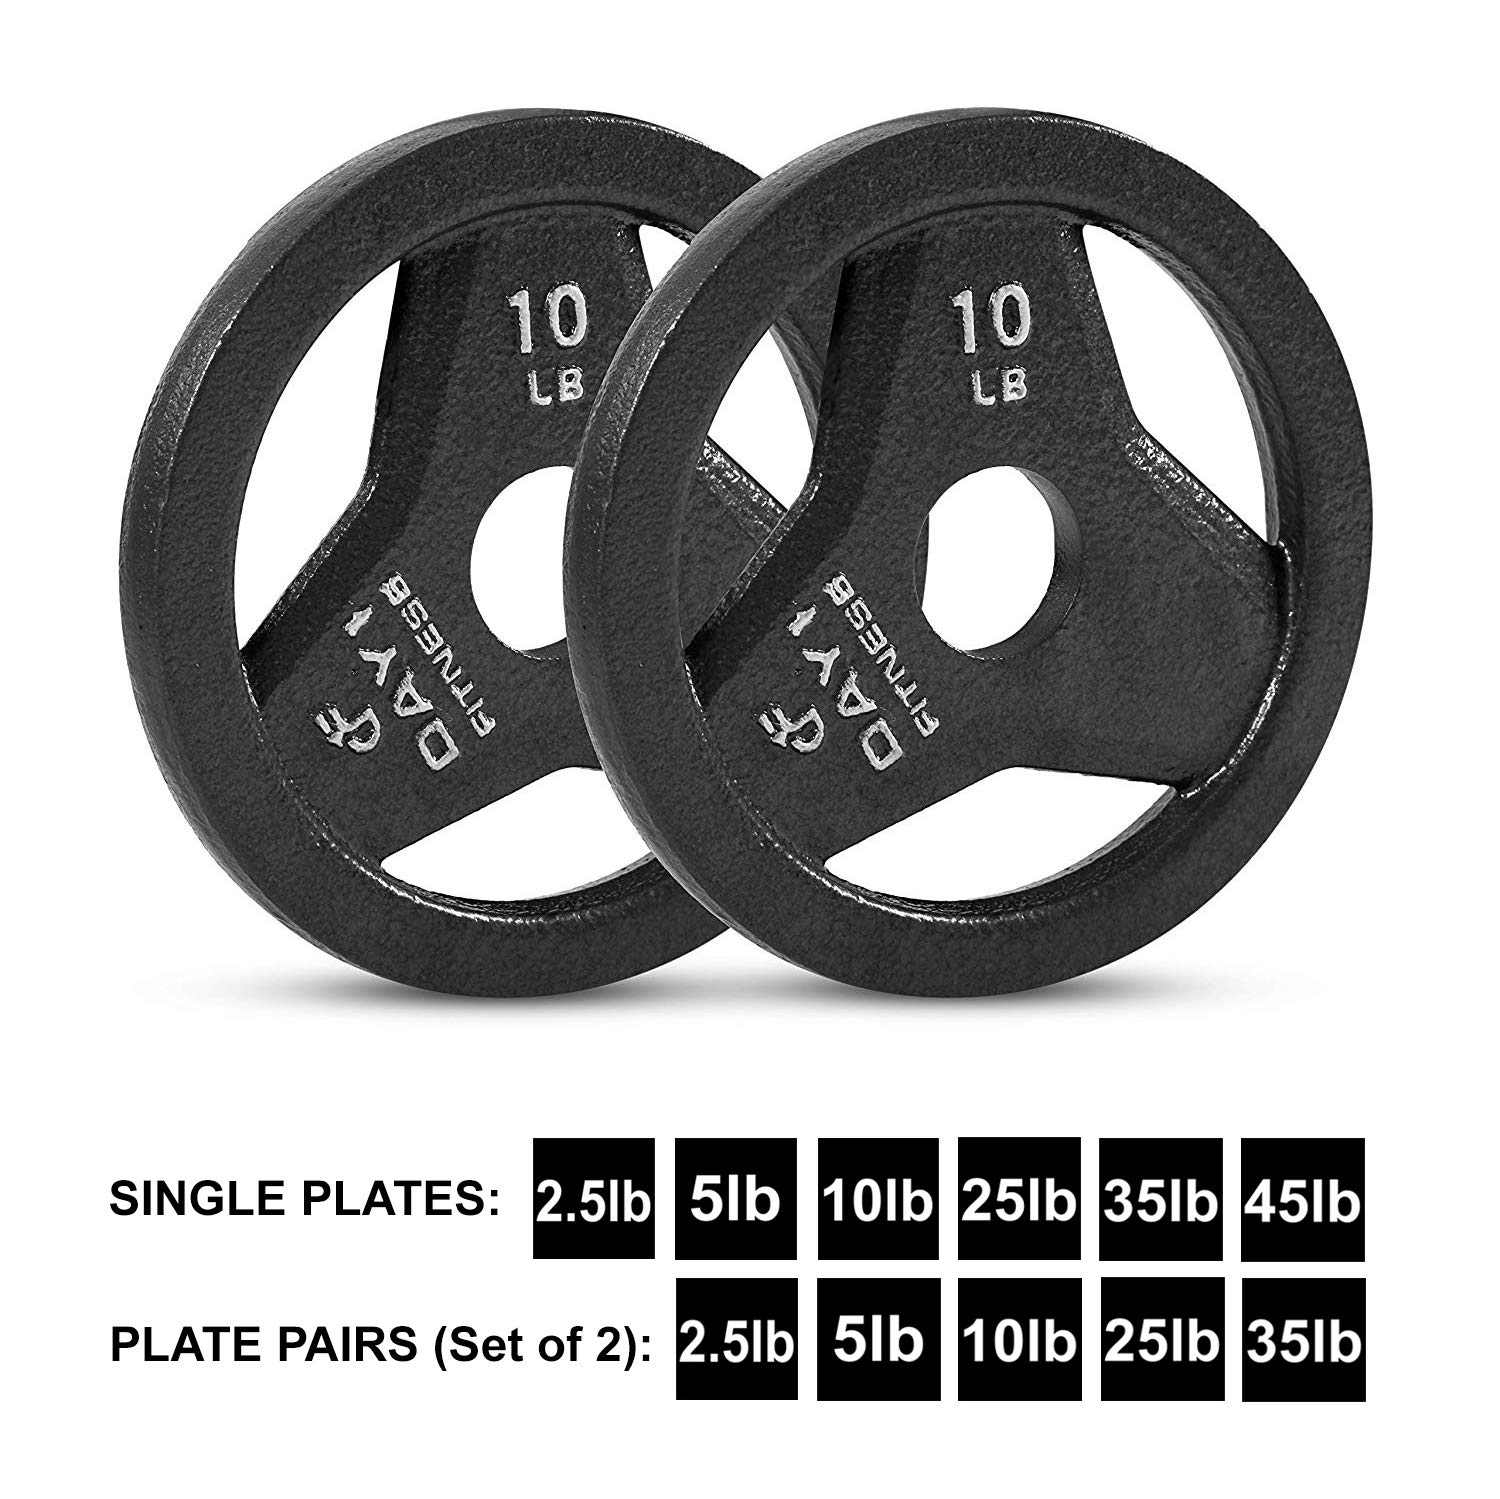 Day 1 Fitness Cast Iron Olympic 2-Inch Grip Plate for Barbell, 10 Pound Set of 2 Plates Iron Grip Plates for Weightlifting, Crossfit - 2'' Weight Plate for Bodybuilding by Day 1 Fitness